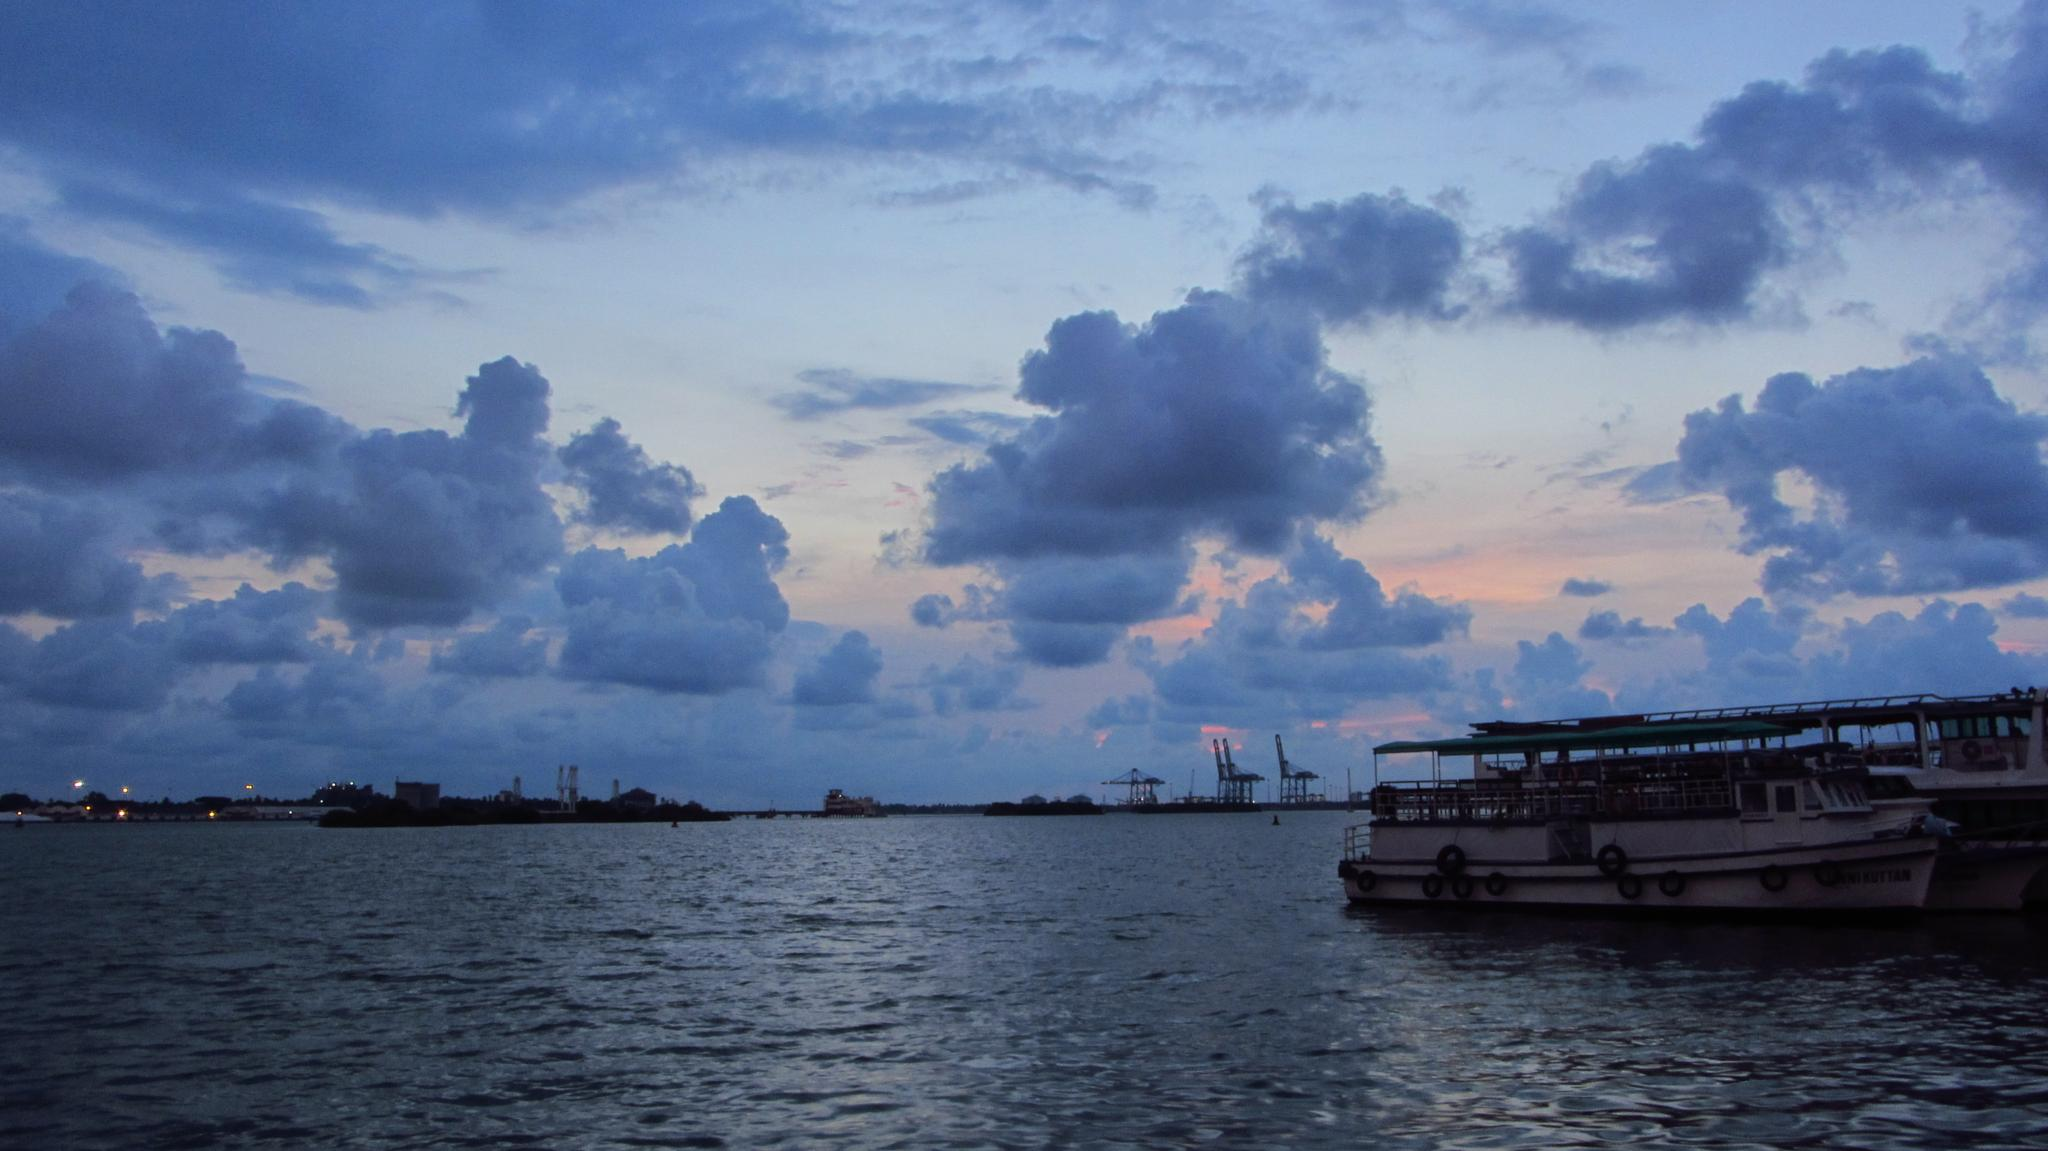 Evening clouds by sinto jose